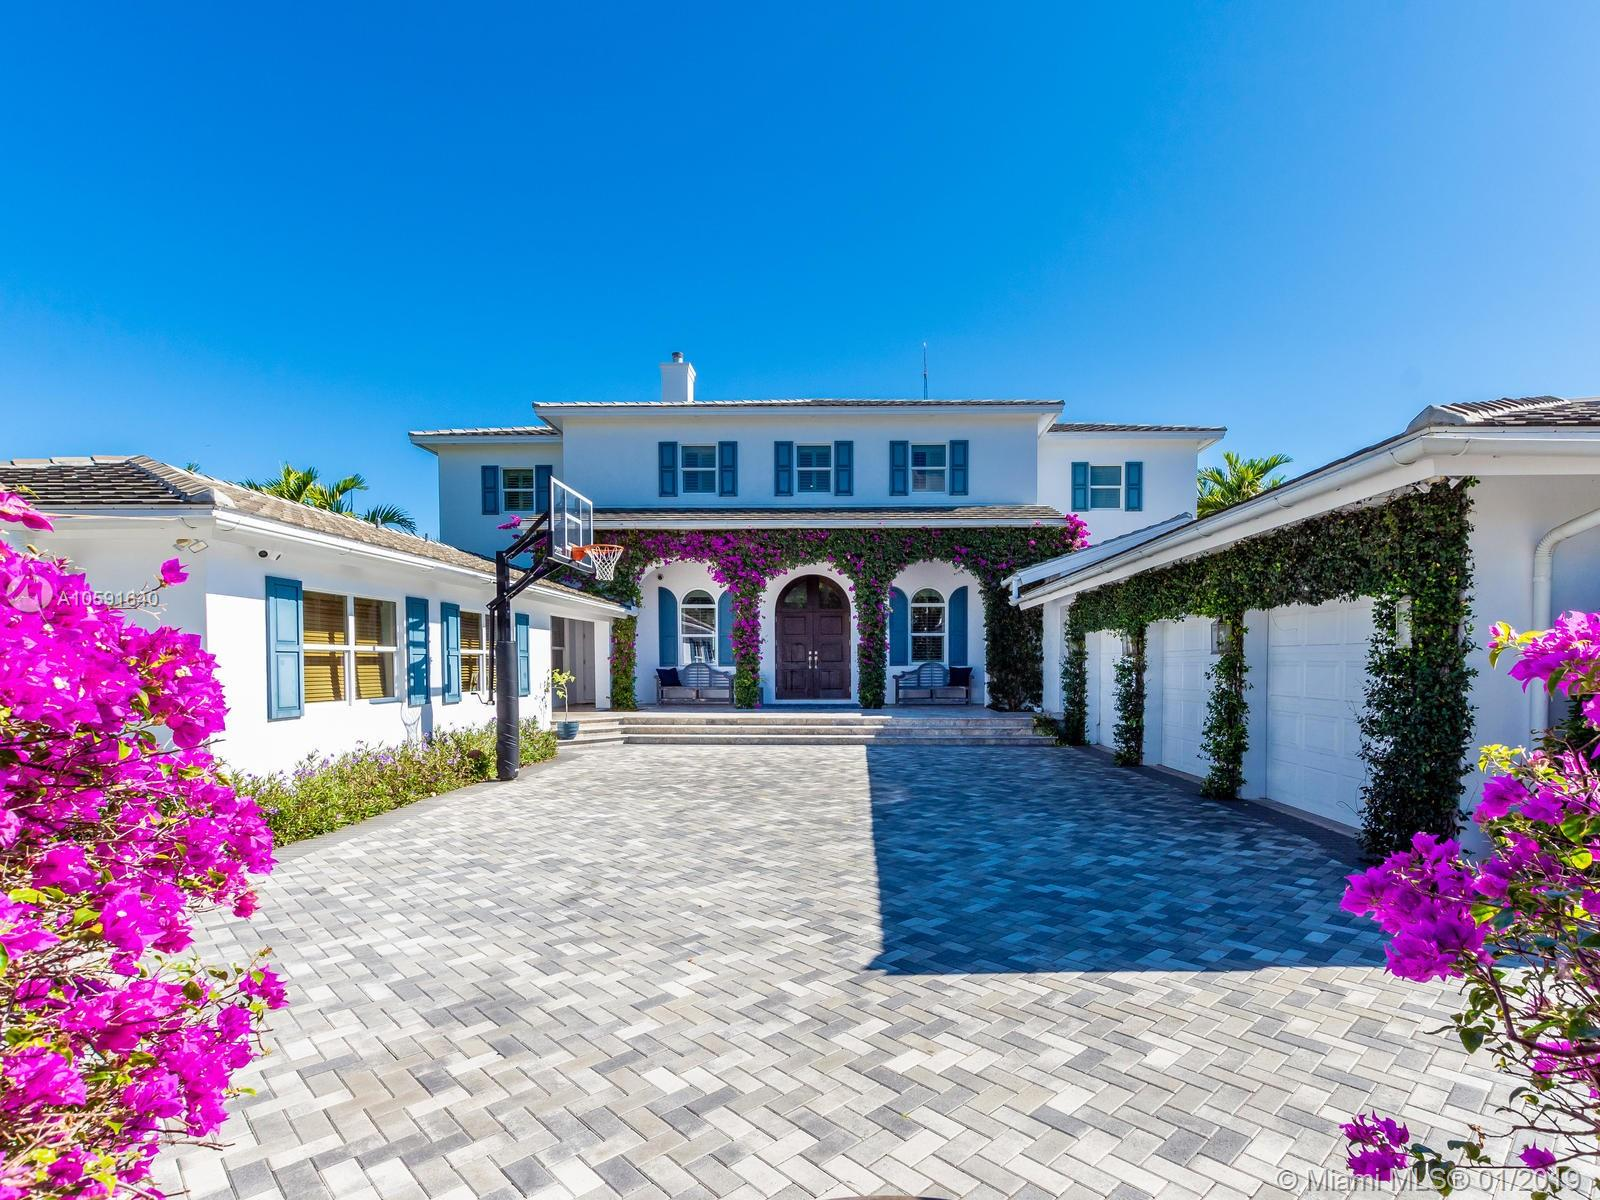 Exudes The Feeling Of Home The Minute You Walk Into This Custom Built Designer British West Indies Style Home Which Boasts 100' Of Intracoastal Waterway, With An 80'X10' Concrete Dock. Complete With 6 Full Bathrooms In Main House And 1 Full Bathroom In Mother In Law Suite. Main House Has 4 Ensuite Bedrooms, An Office Off Of The Kitchen And Mudroom. The 4Th Bedroom Has 2 Bathrooms, The Bunk Room, Is 28'11 X 15' A Total Of 421.65 Sqft Designed To Be Converted Into Two Bedrooms If Needed. A Wood Burning Fireplace In The Upstairs Family Room. Custom Built-Ins. Open Floor Plan To Maximize The Intracoastal Waterway Views. Truly A Unique Home With Top Of The Line Kitchen And Finishes Throughout In The Most Sought Out Community In All Of Fort Lauderdale, Sunrise Intracoastal.